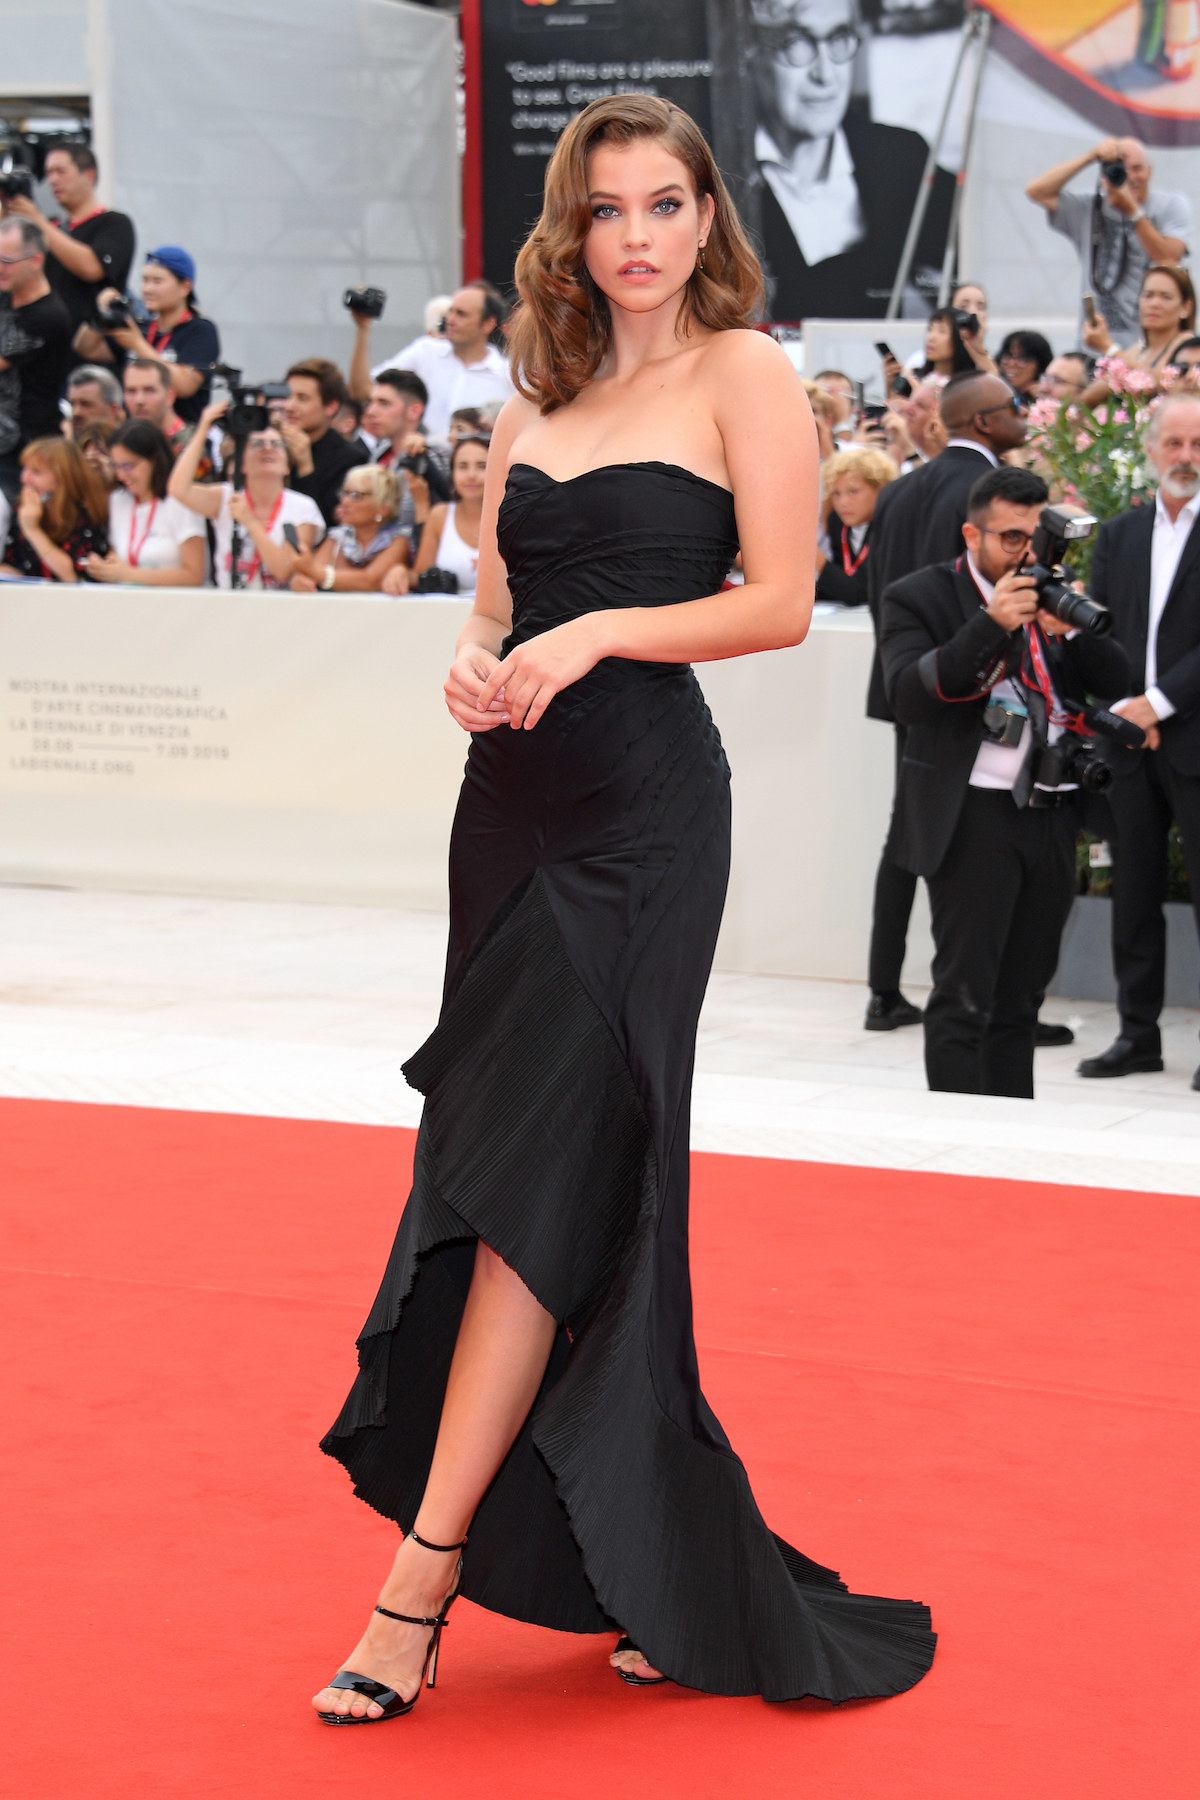 arbara Palvin walks the red carpet ahead of the Opening Ceremony.